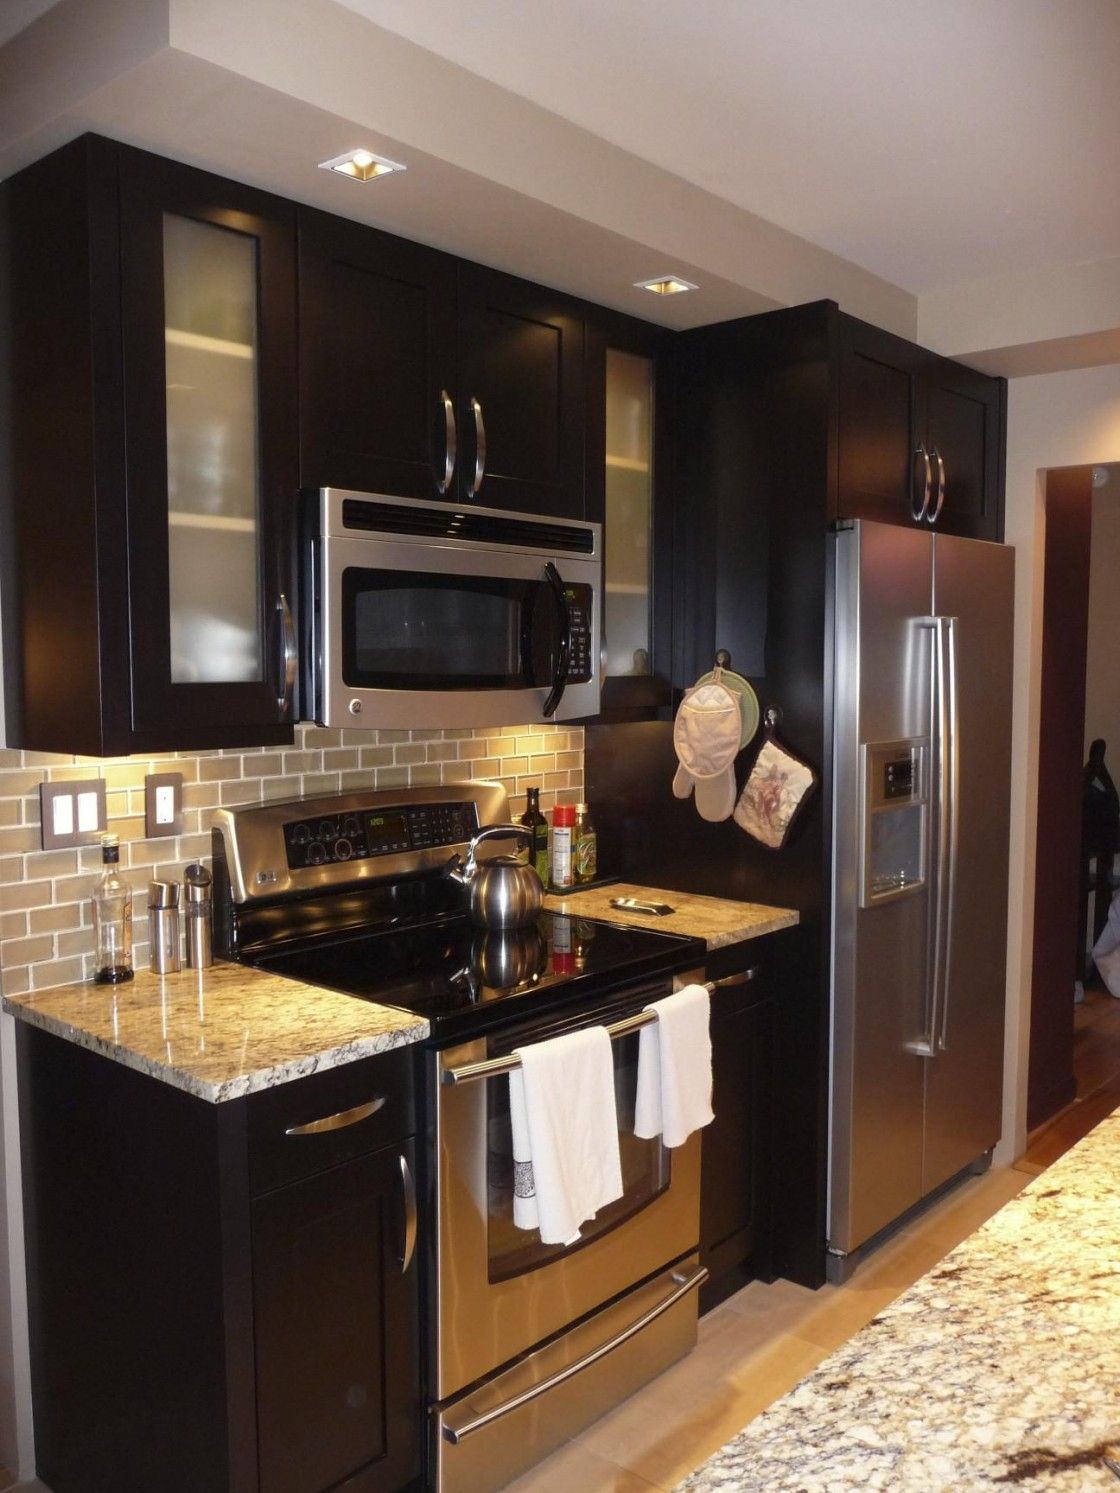 Granite Kitchen Design Painting L Modern Small Kitchen Design With Black Painted Cherry Wood .